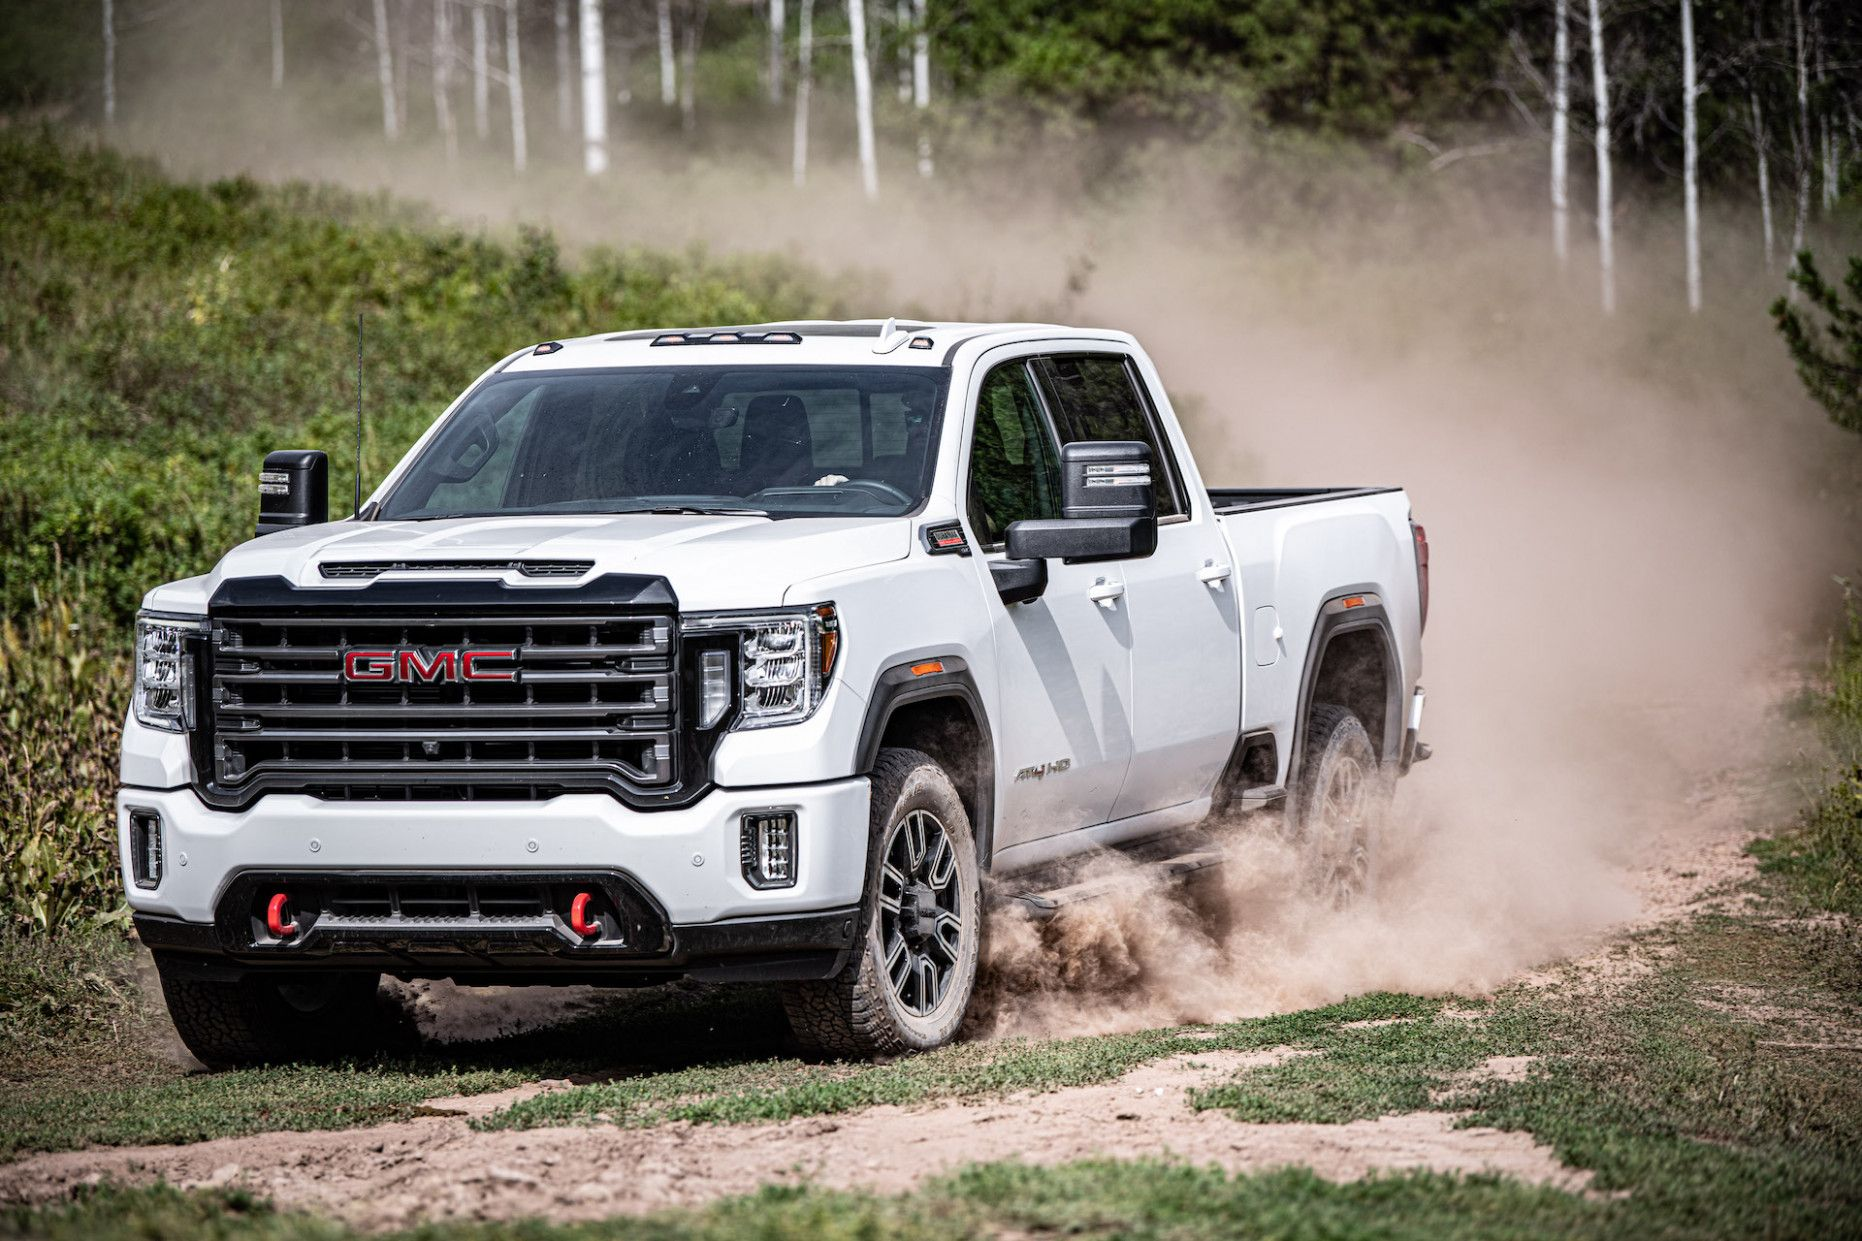 2020 Gmc 2500 Trim Levels Concept In 2020 Gmc 2500 Gmc Gmc Sierra 2500hd